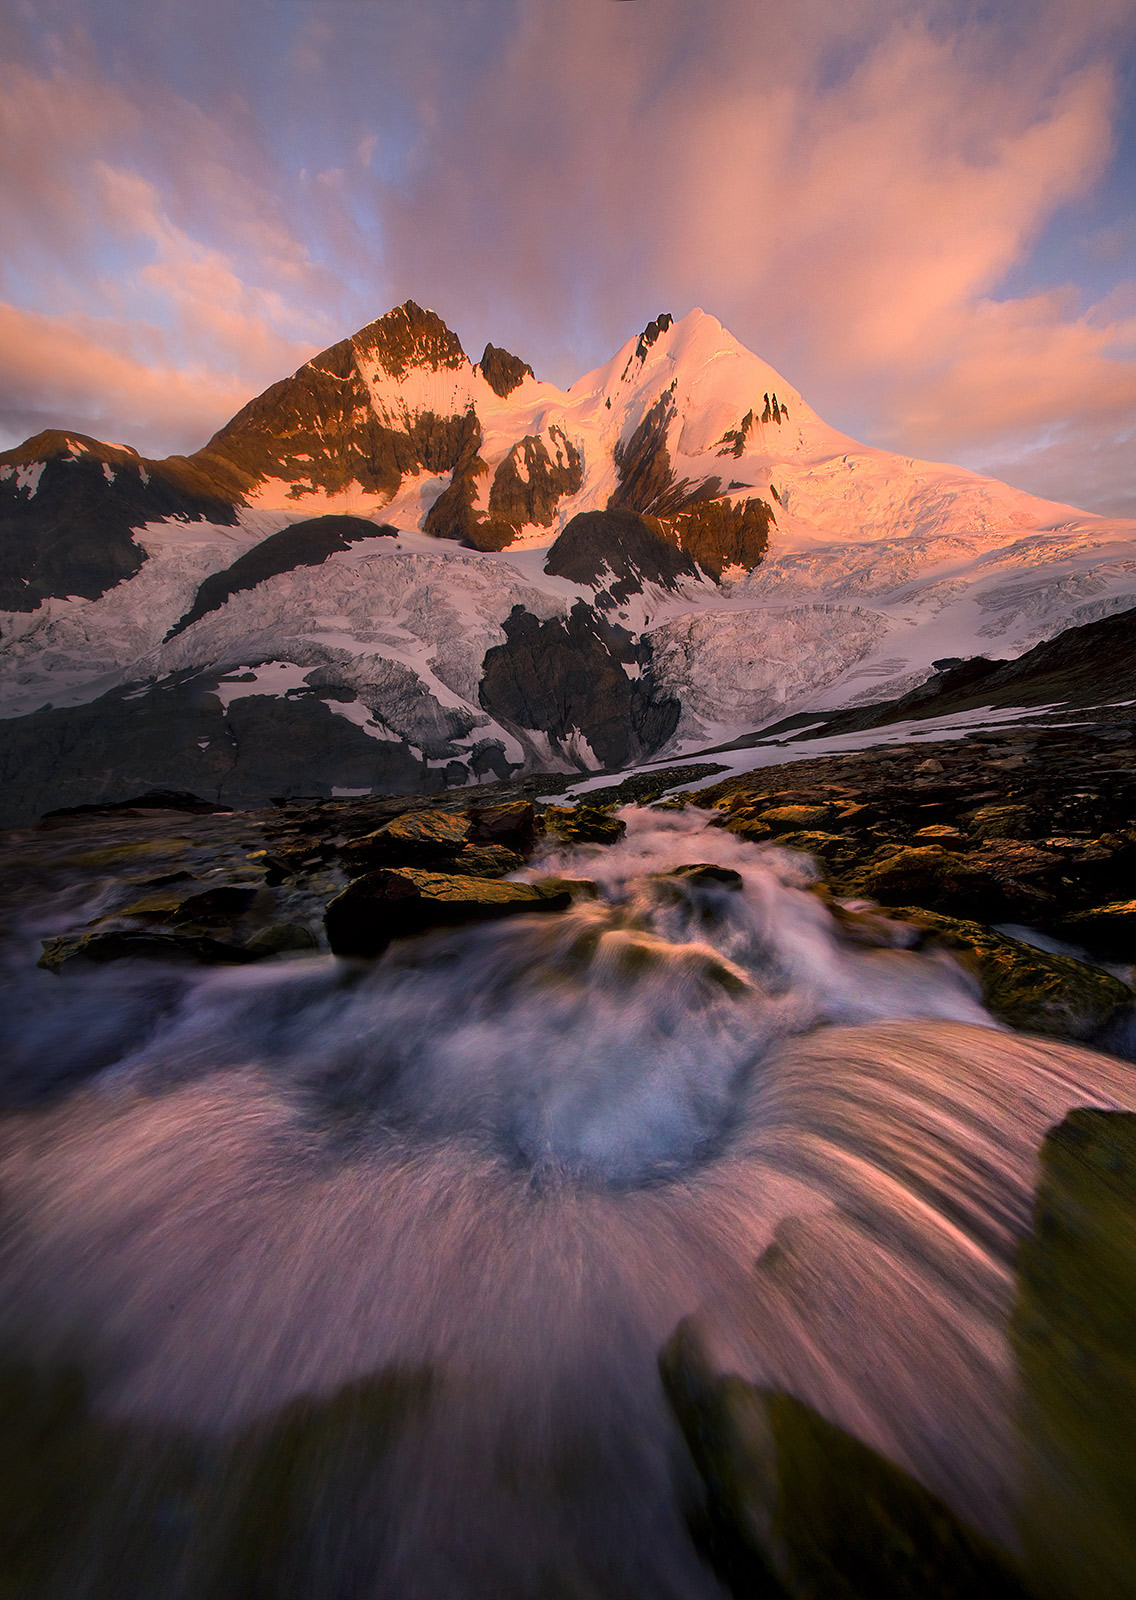 Cascades catching the light of sunrise looking down a steep talus field towards a glacial valley and high peaks in the distance...